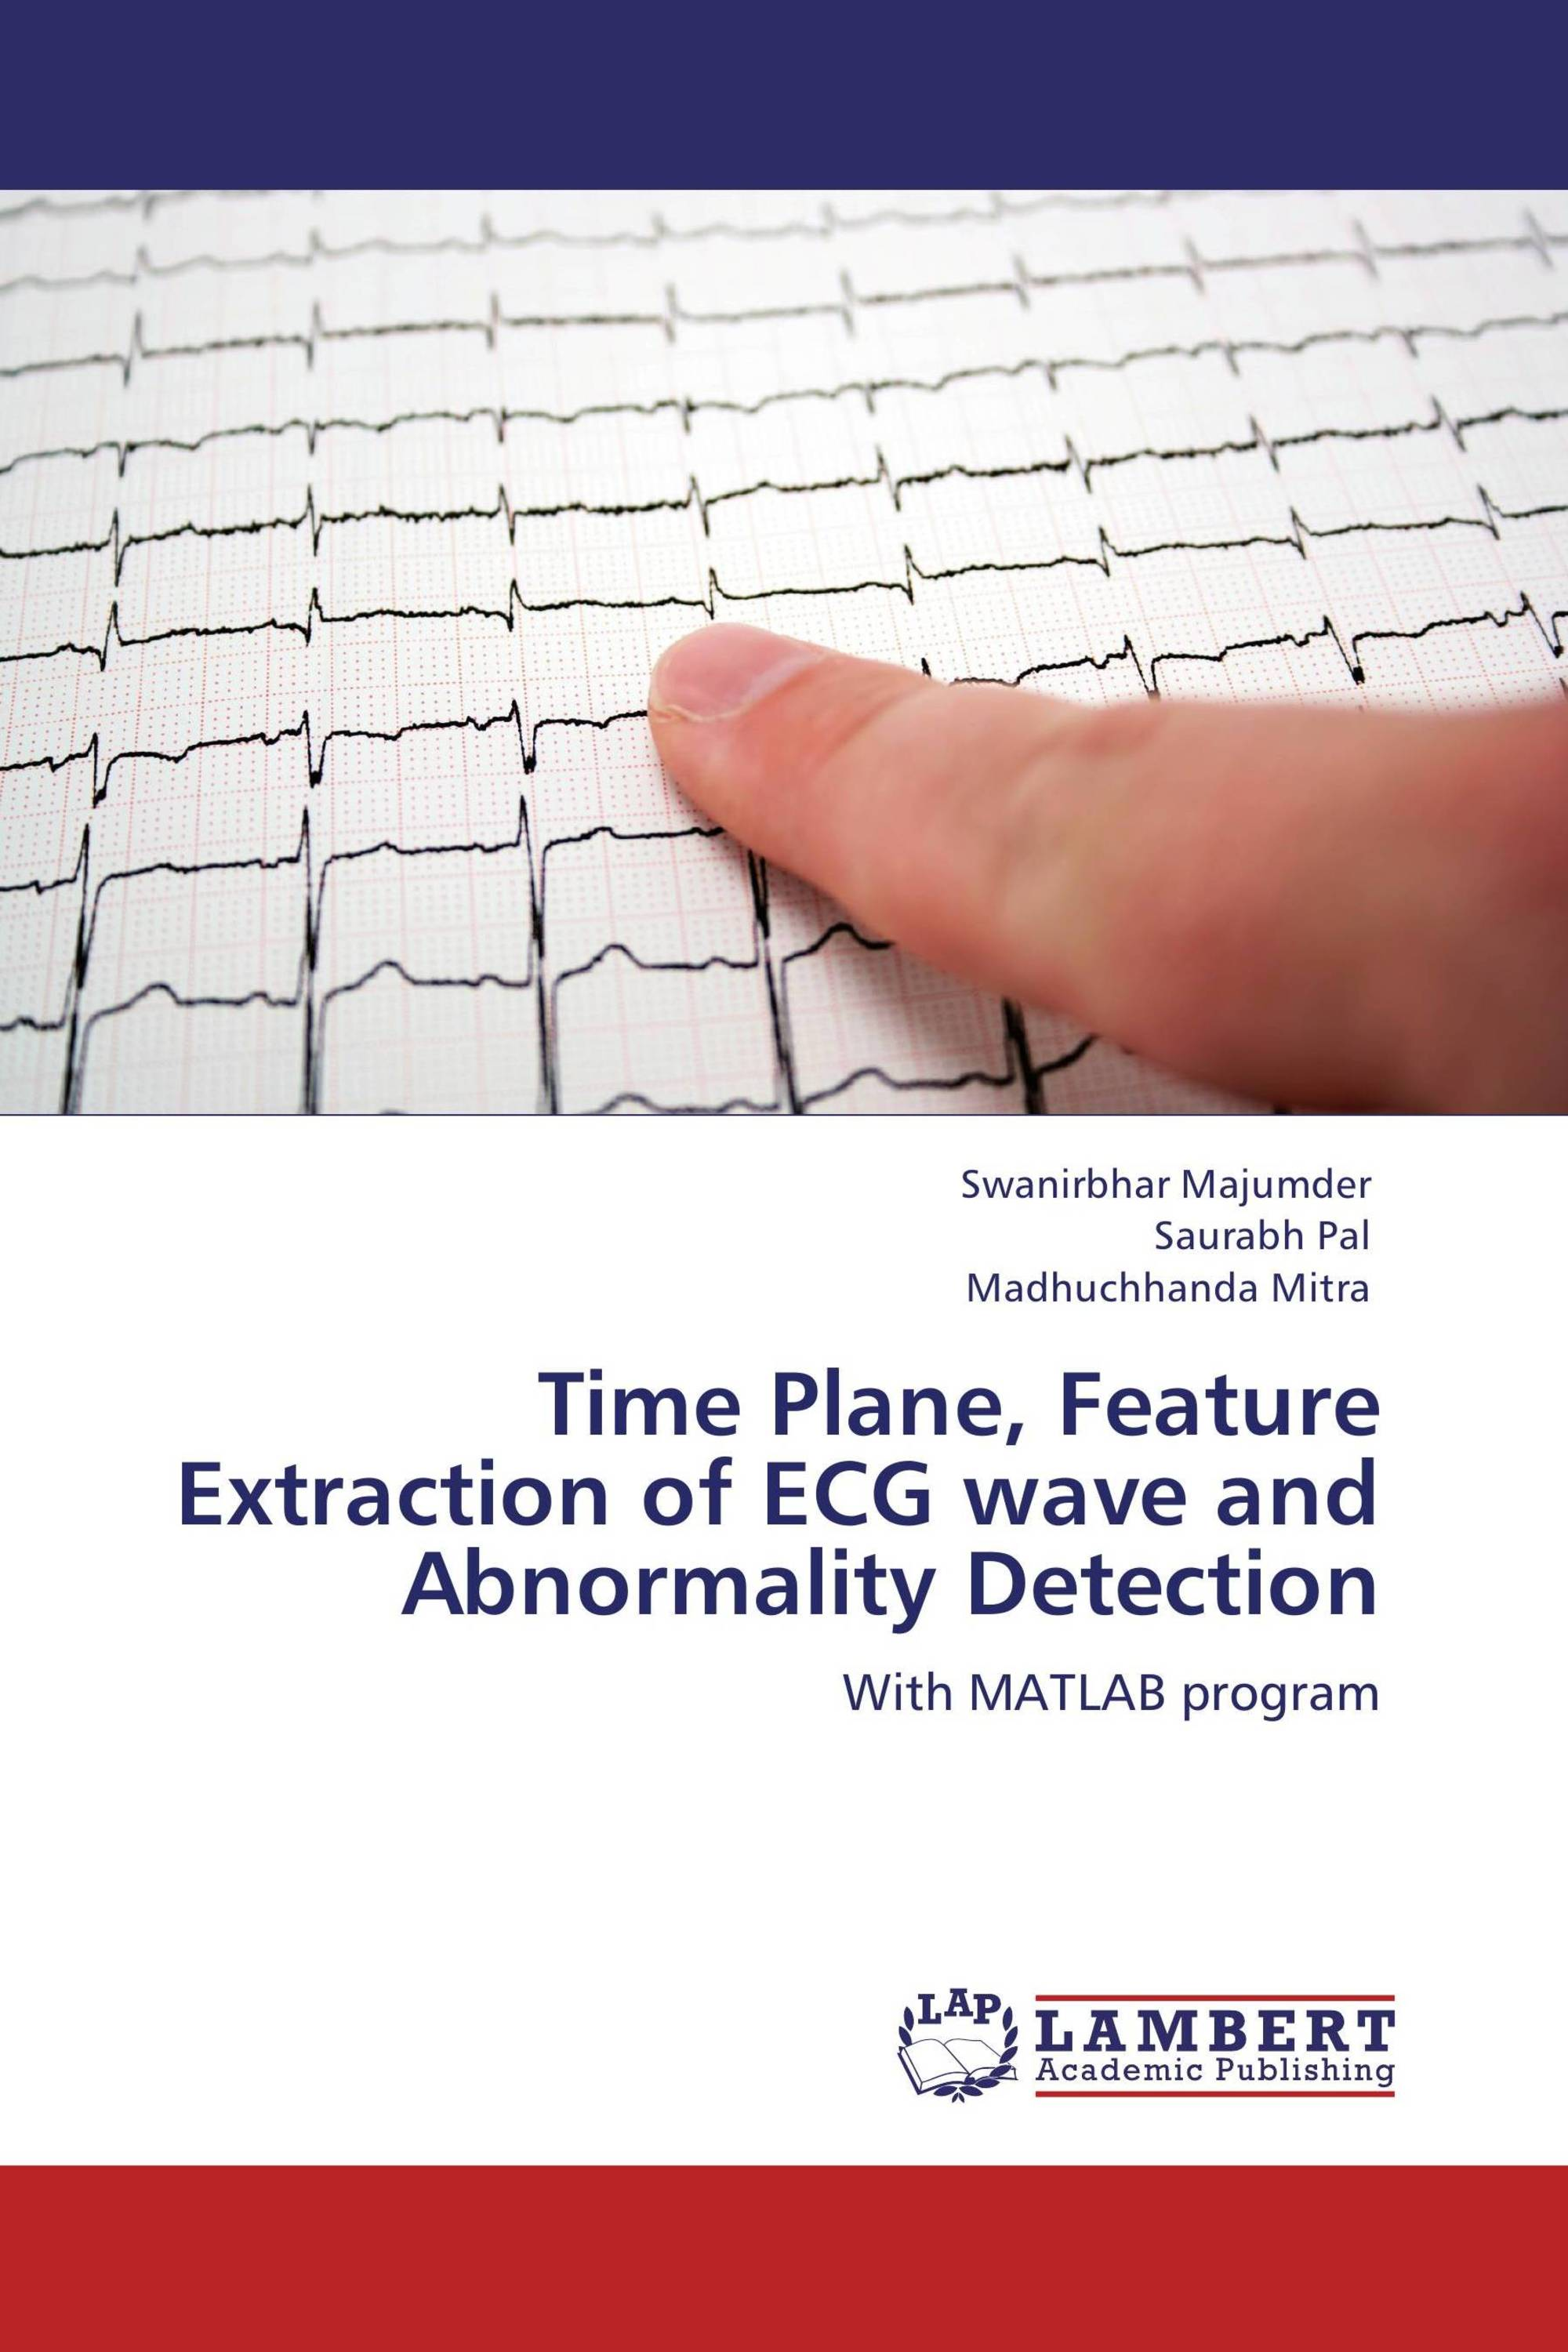 Time Plane, Feature Extraction of ECG wave and Abnormality